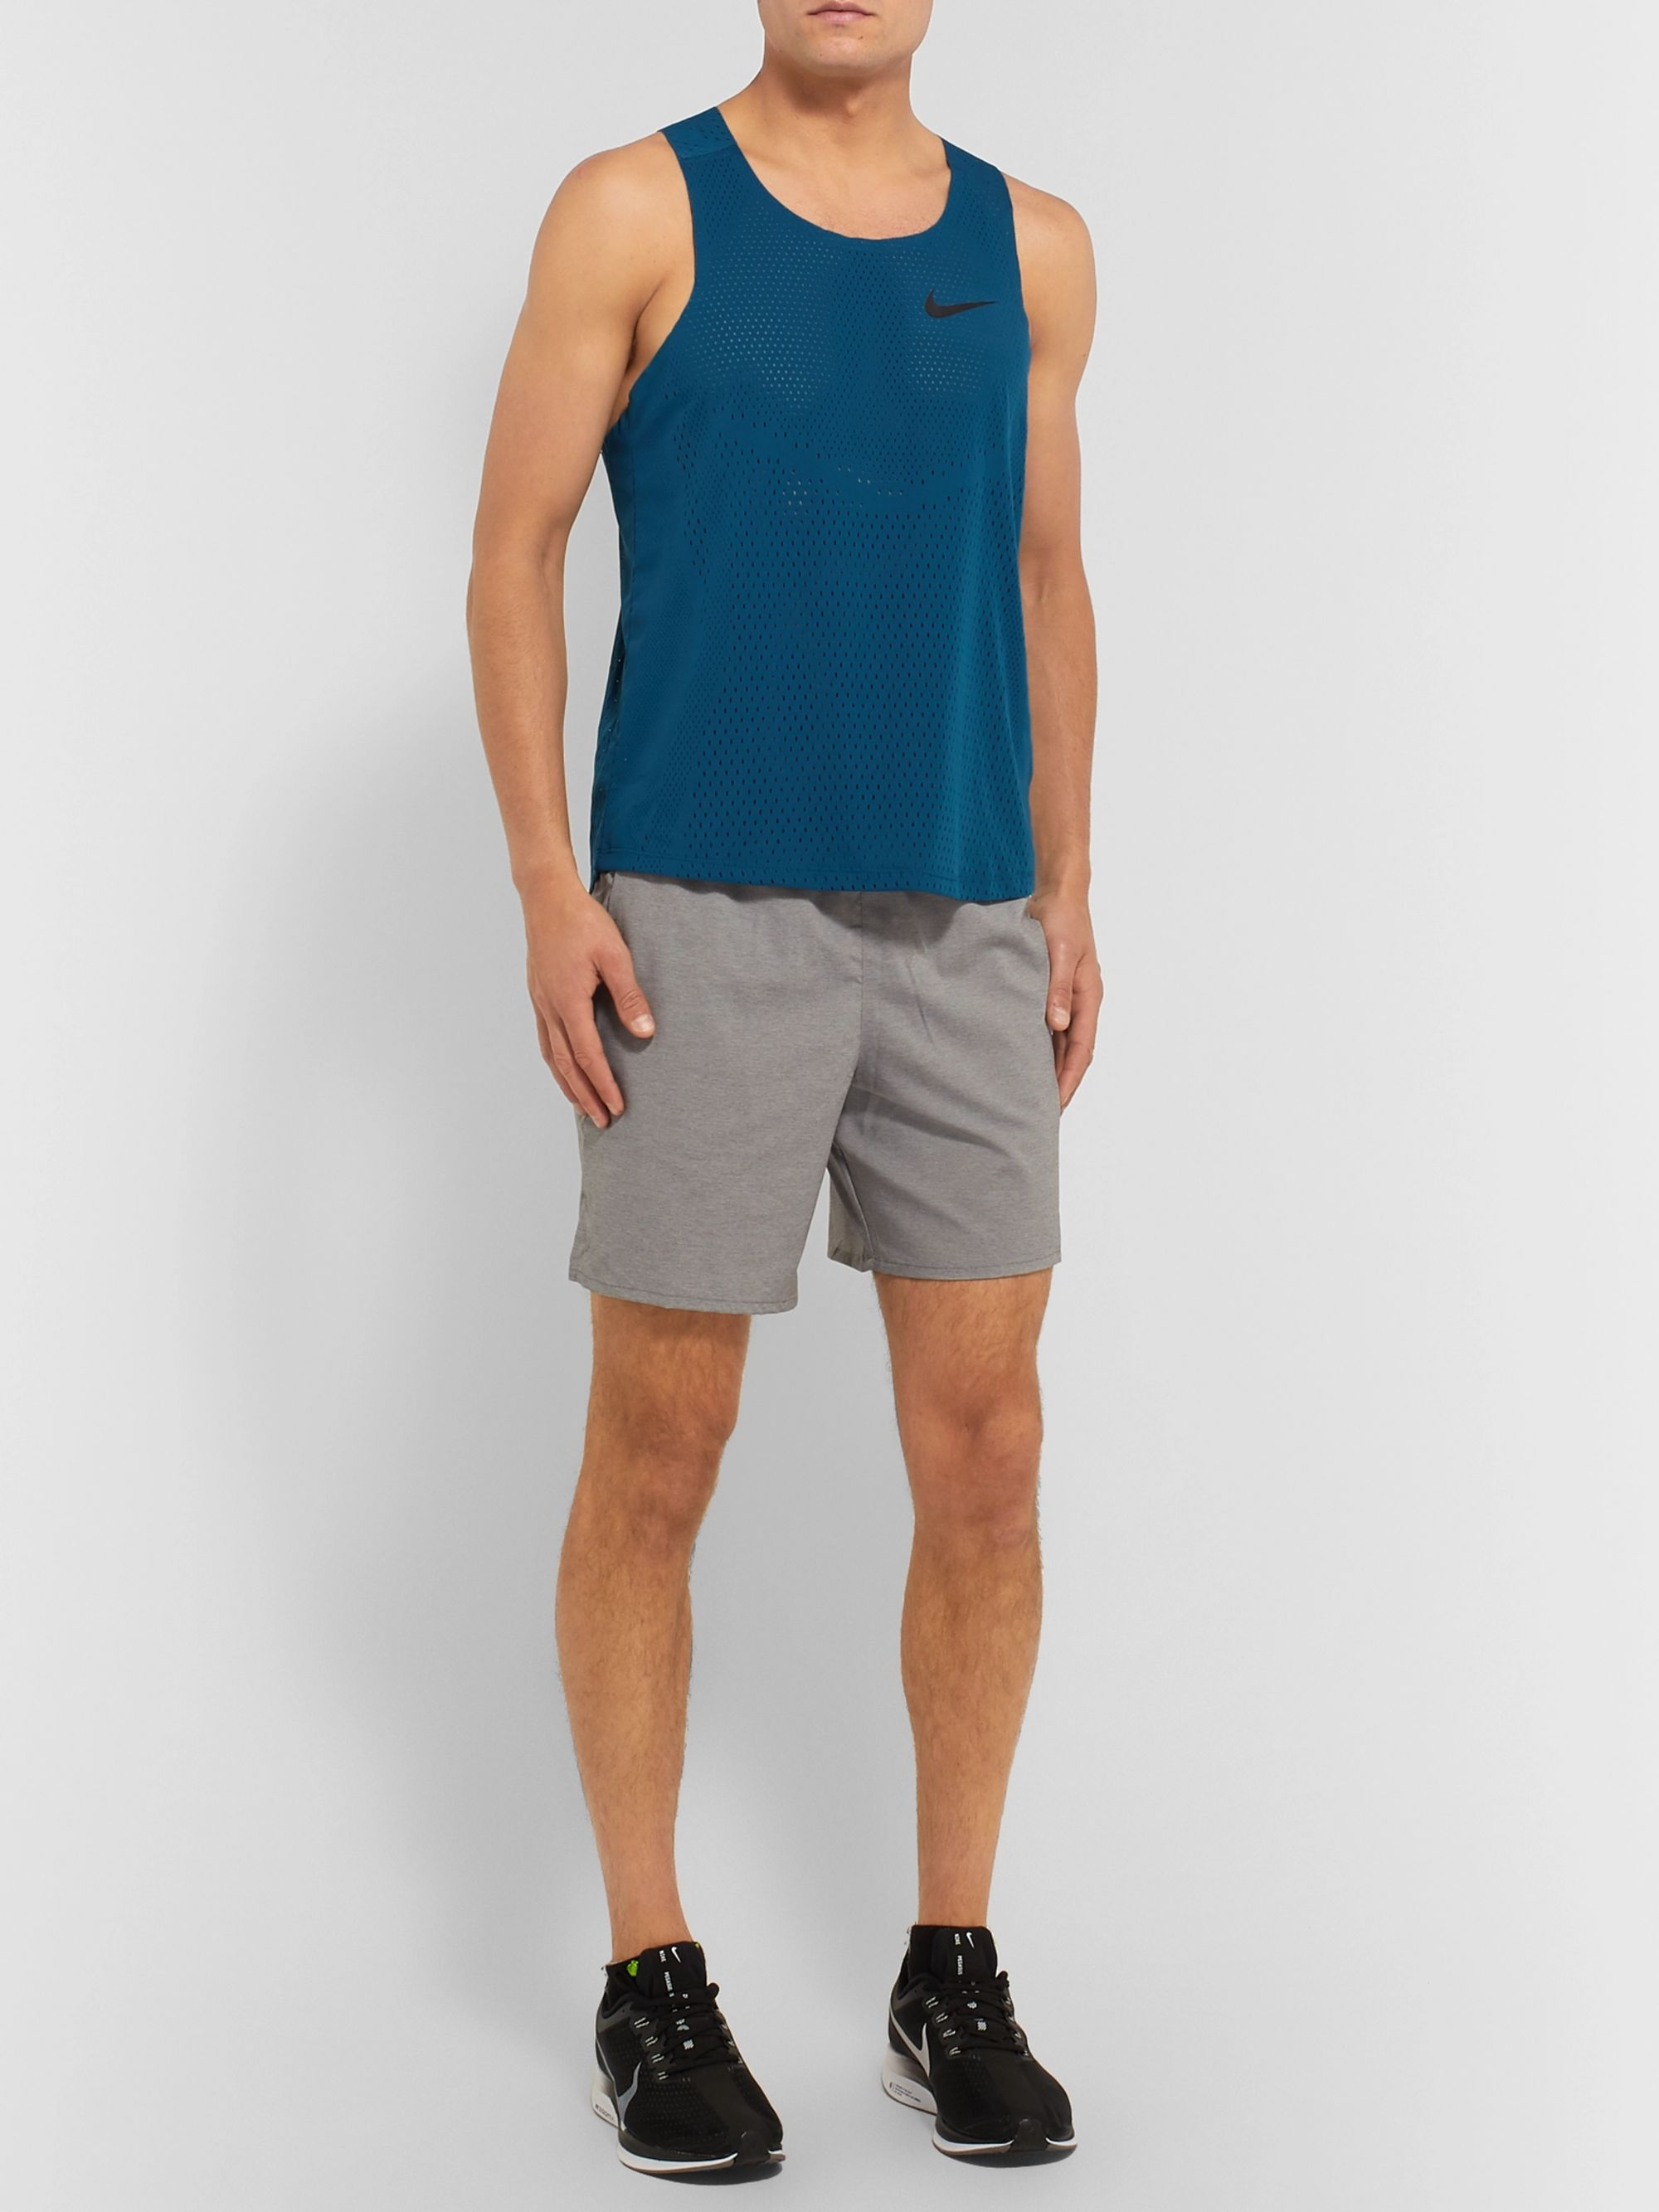 Nike Running Aeroswift Tank Top